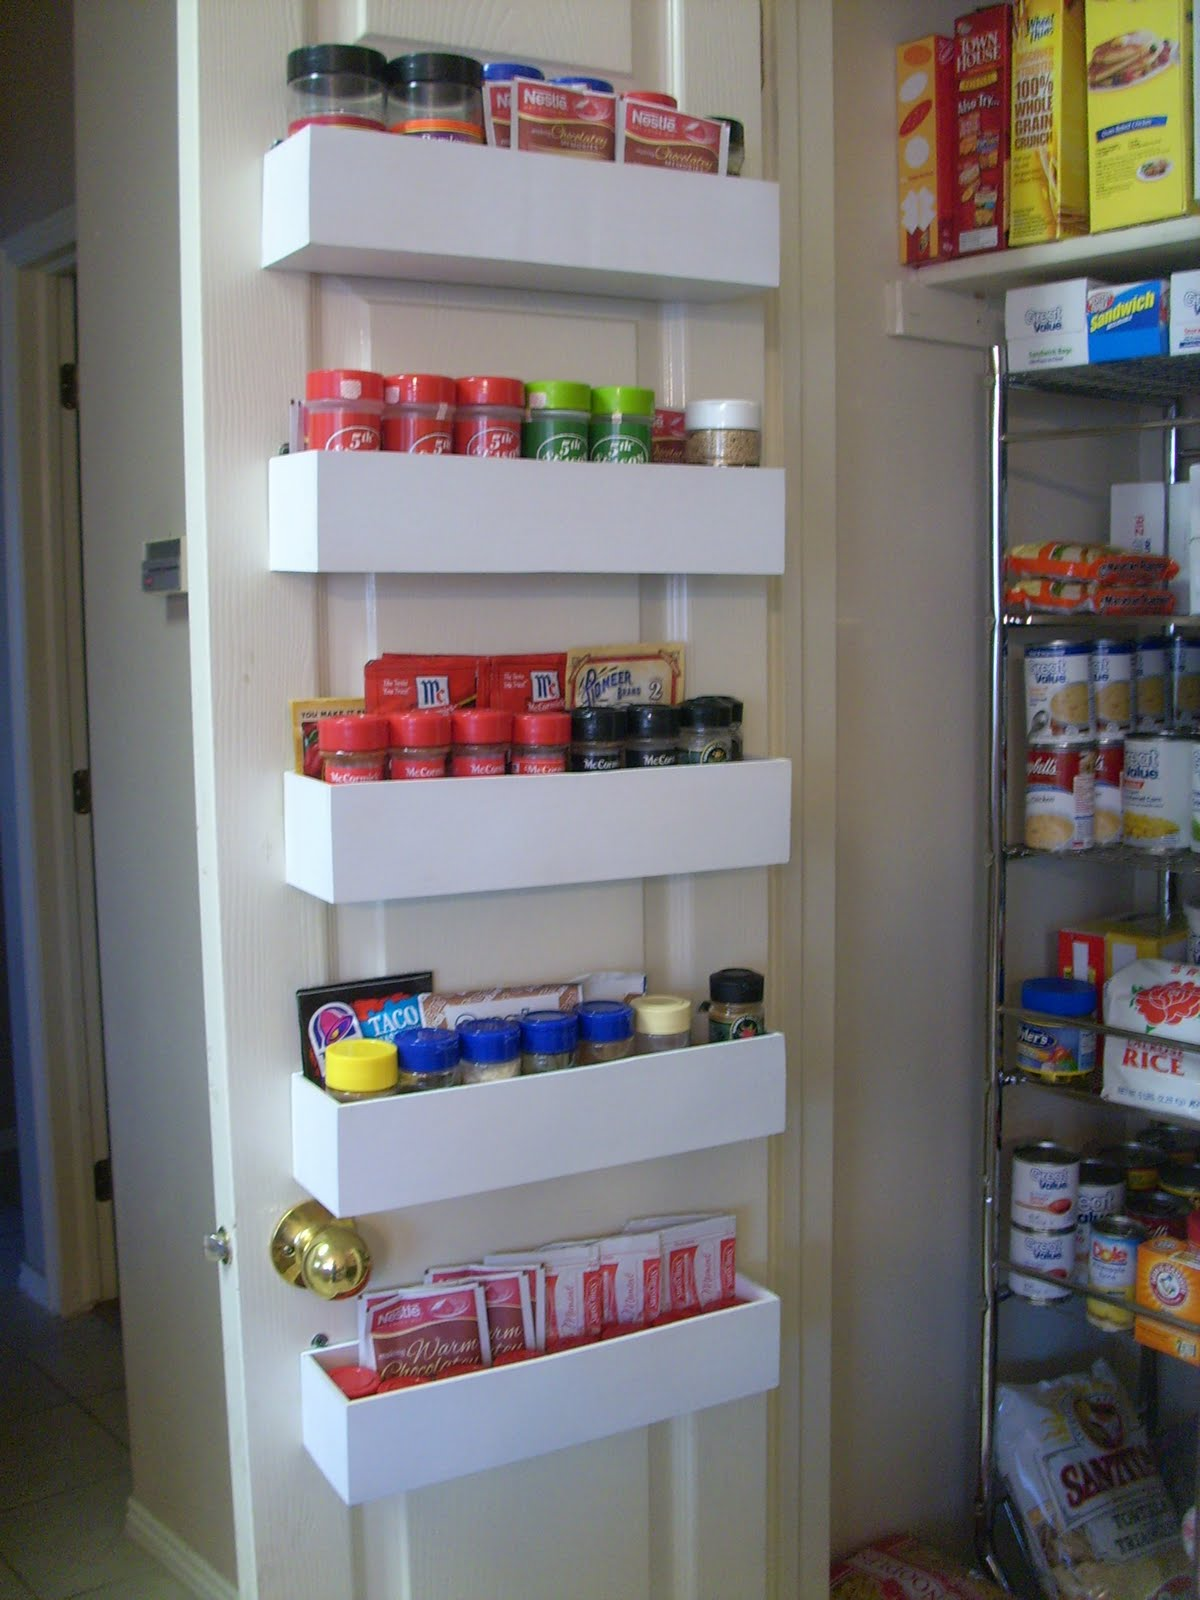 The extraordinary Amazing organize kitchen pantry picture